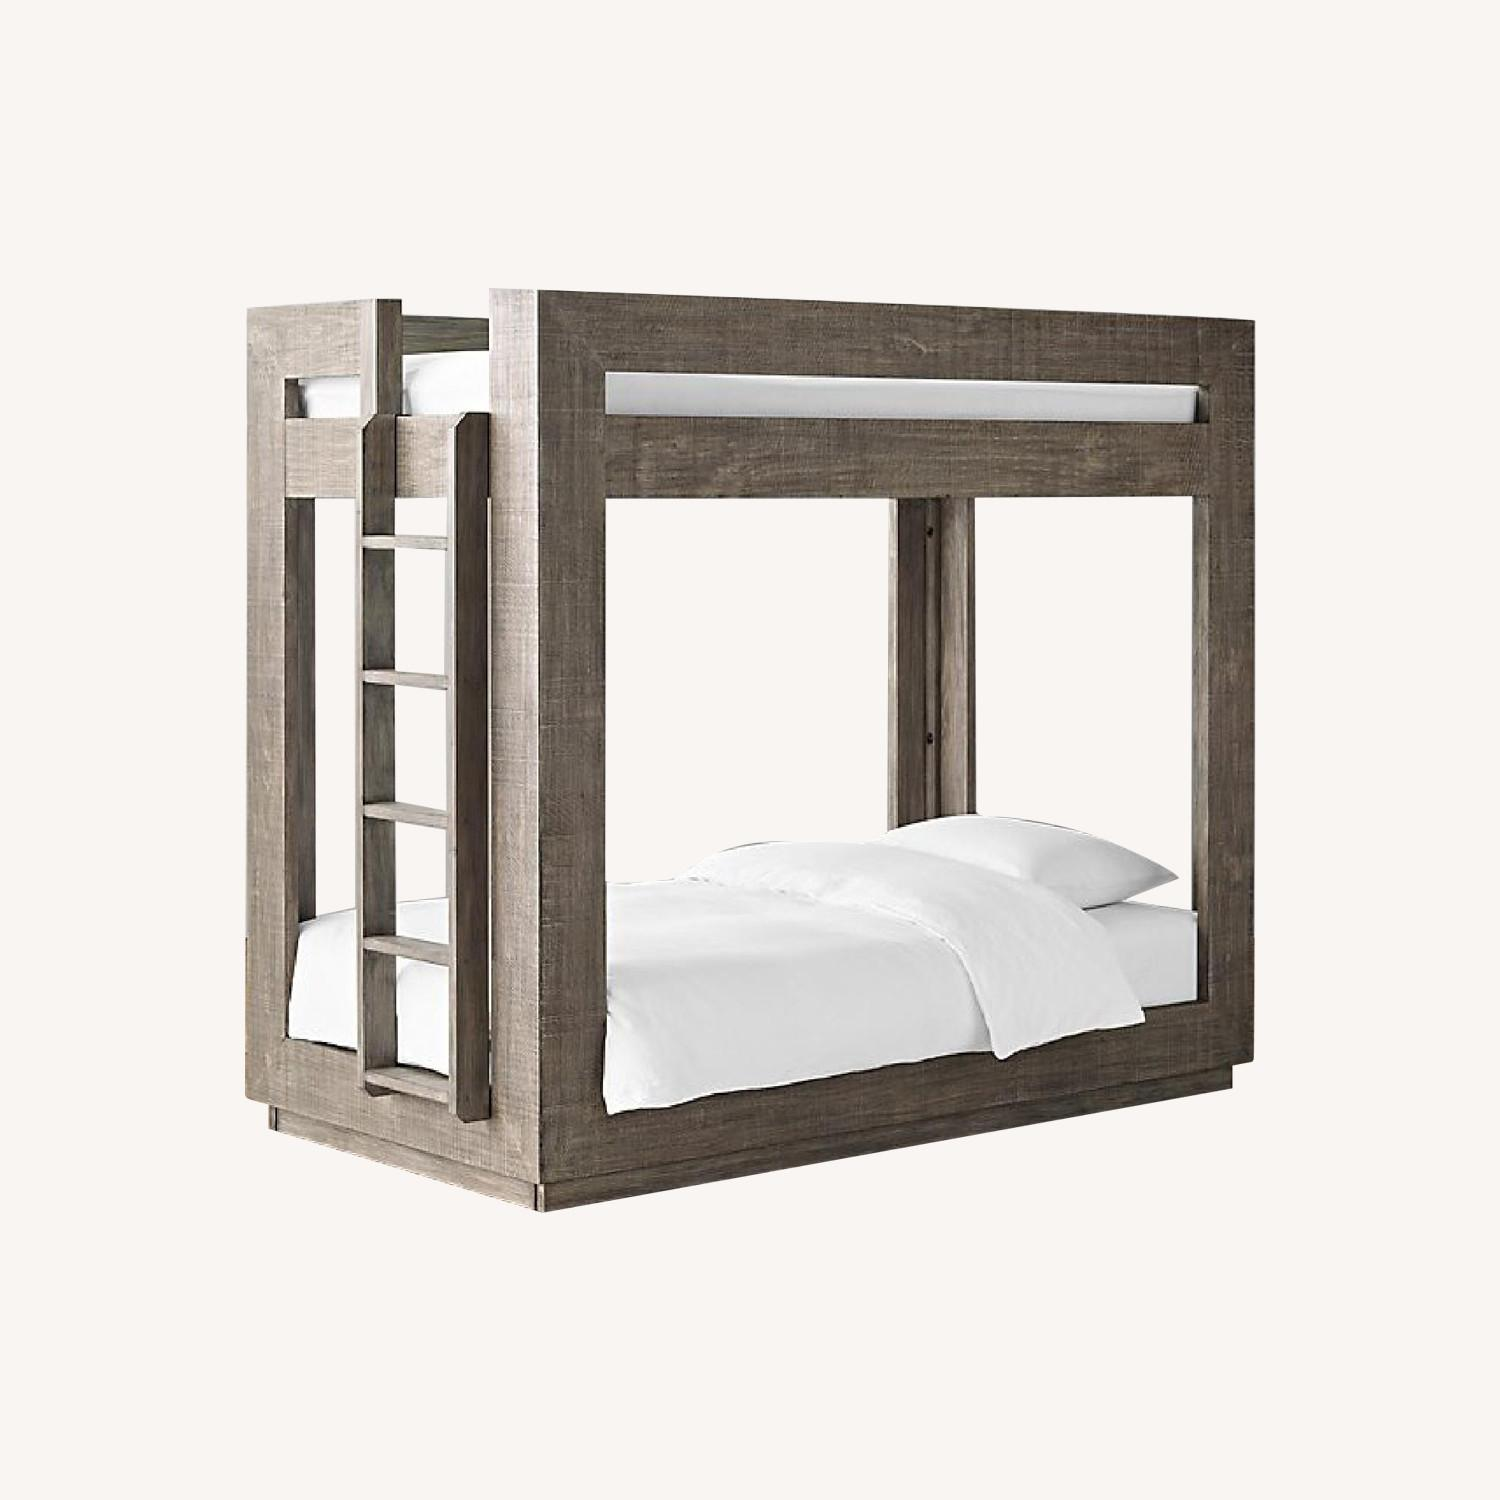 Restoration Hardware Thayer Bunk Bed - image-0